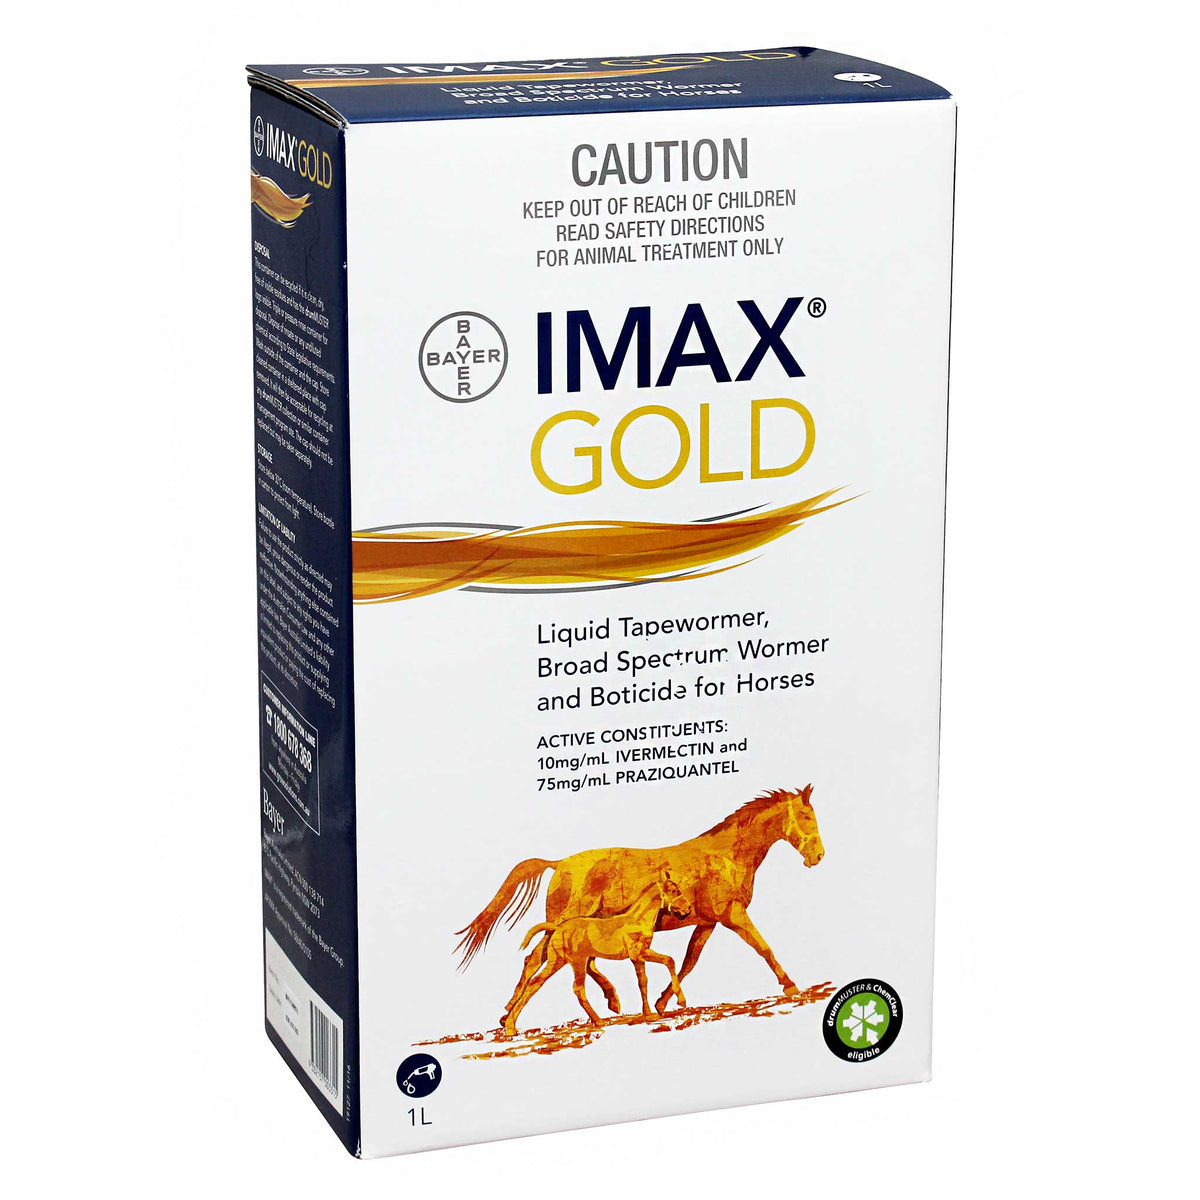 Imax Gold Broad Spectrum Wormer & Boticide for Horses 1L Studpack